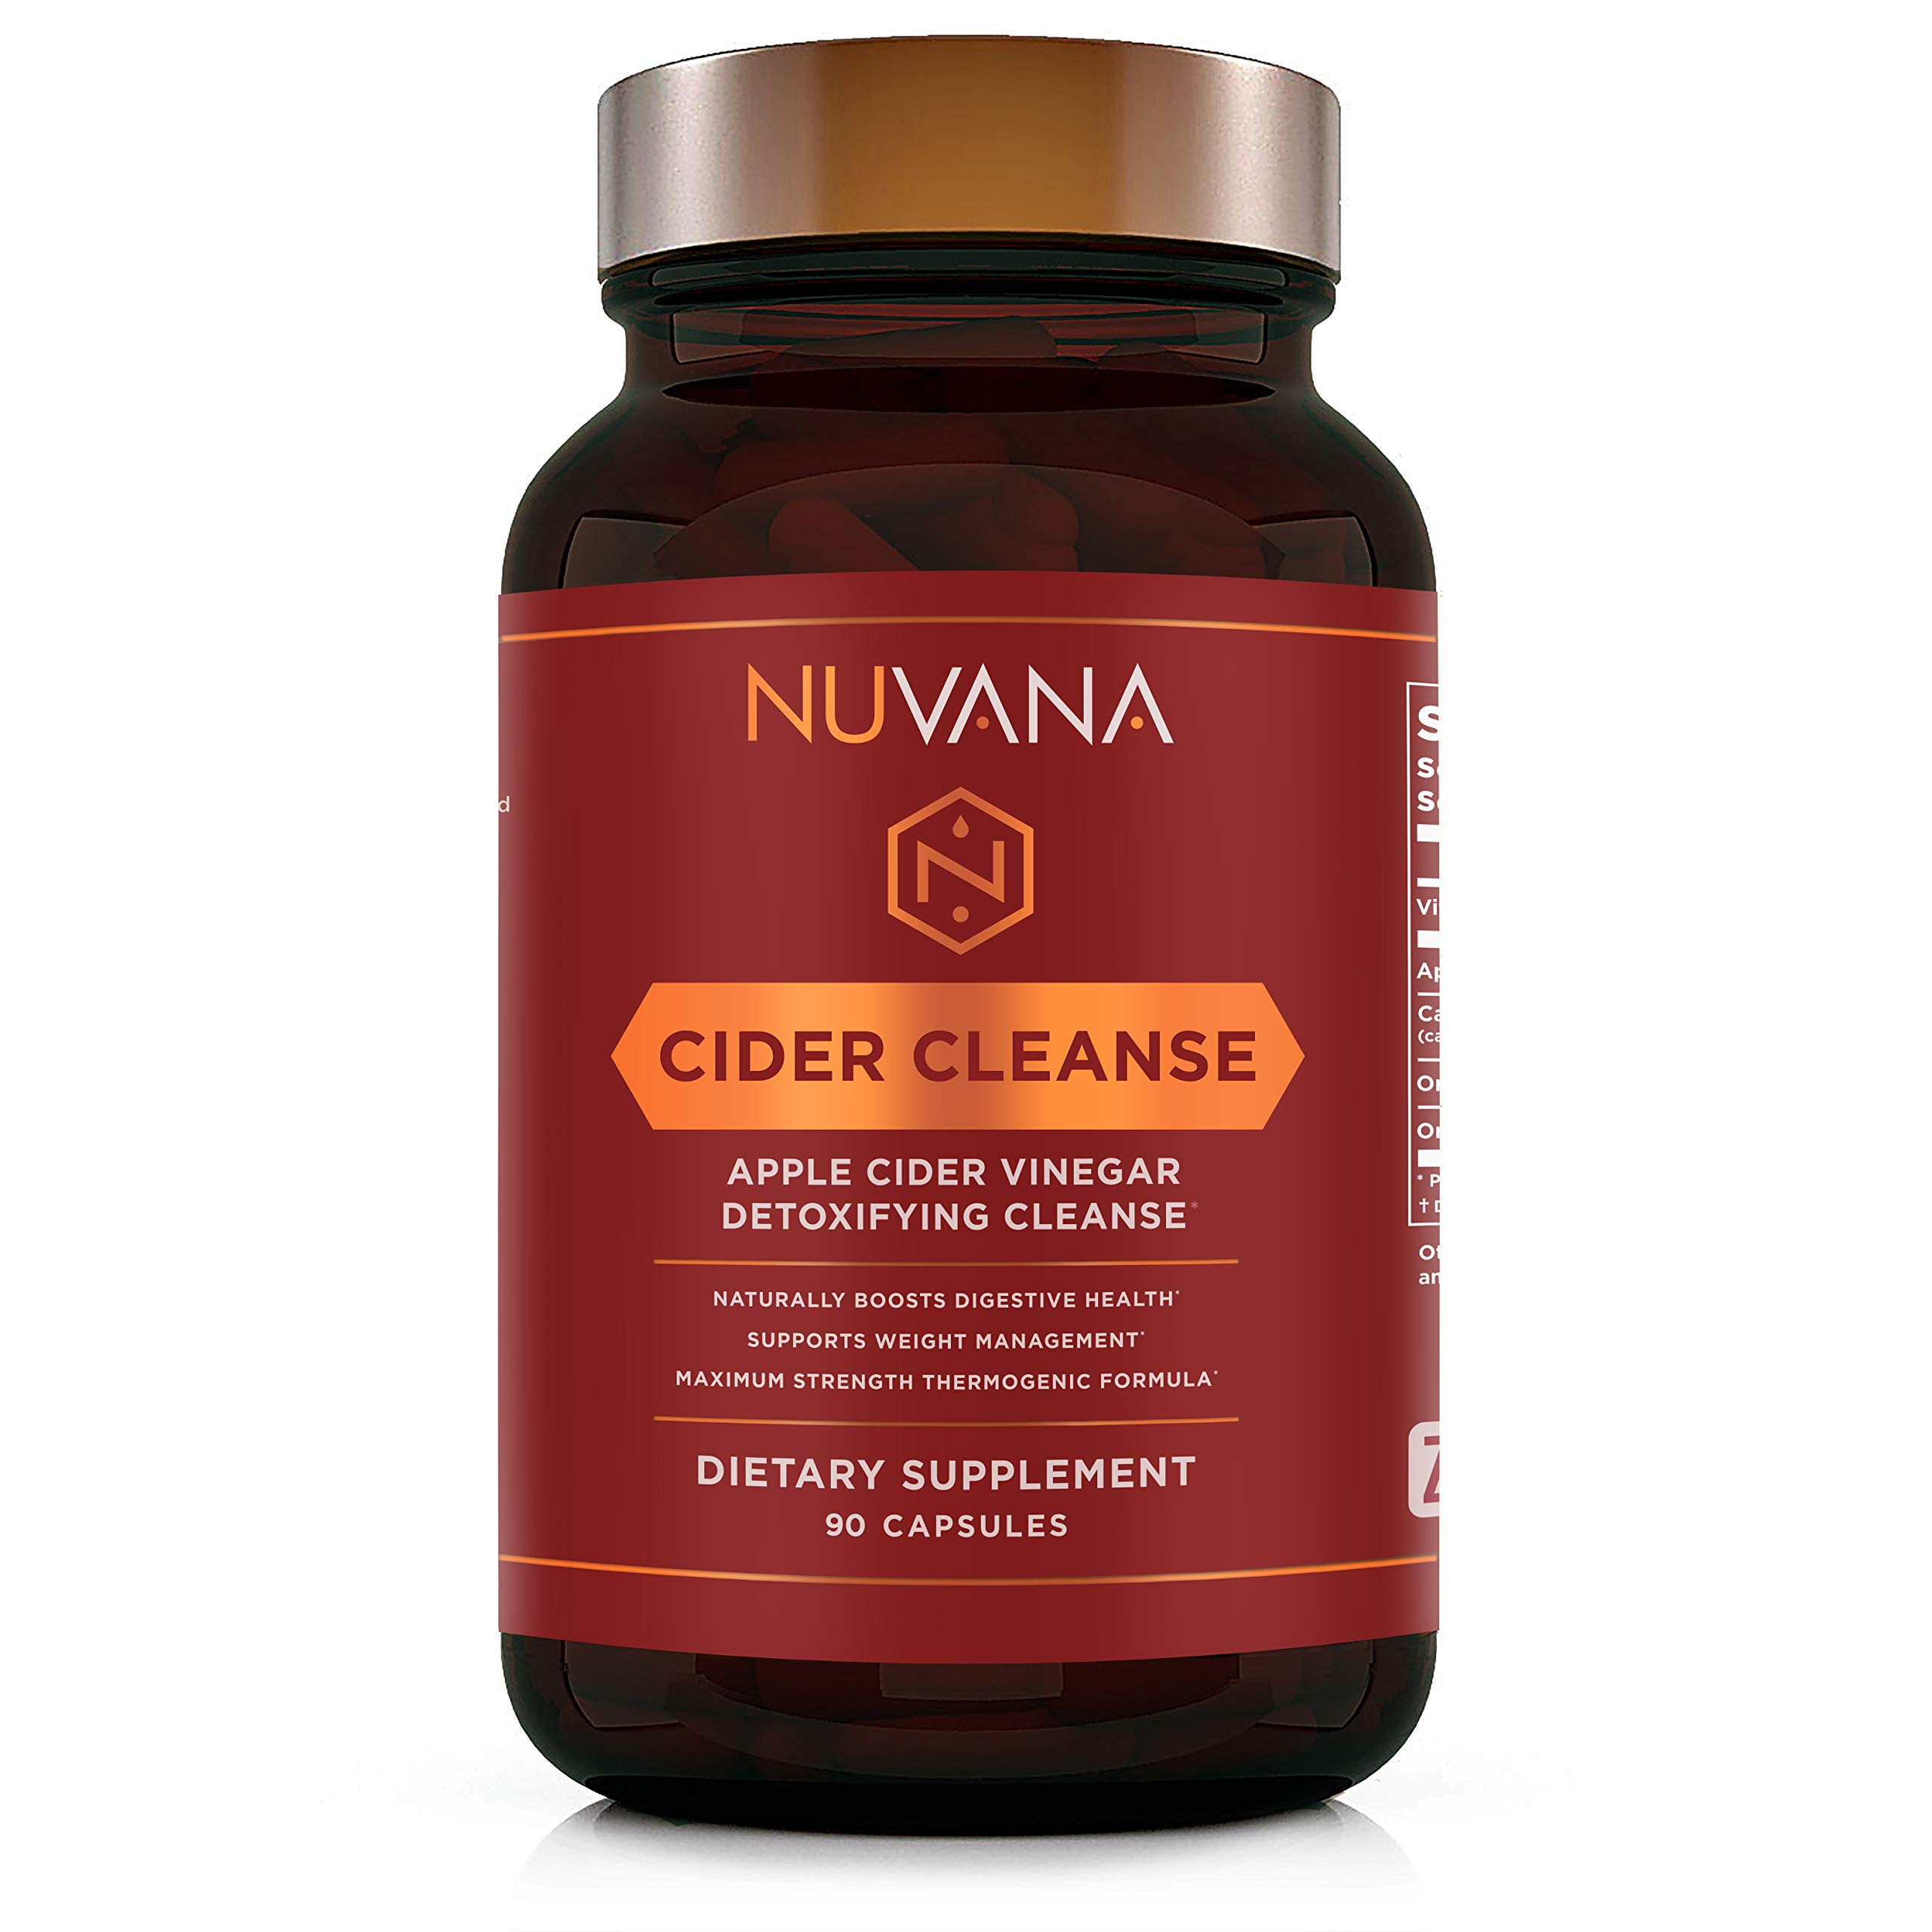 Cider Cleanse | Apple Cider Vinegar with Organic Ginger, Cinnamon, Cayenne Pepper and Vitamin C | Max Strength Thermogenic Fat Burner Pills for Improved Digestion and Detox | 90 Vegan Capsules